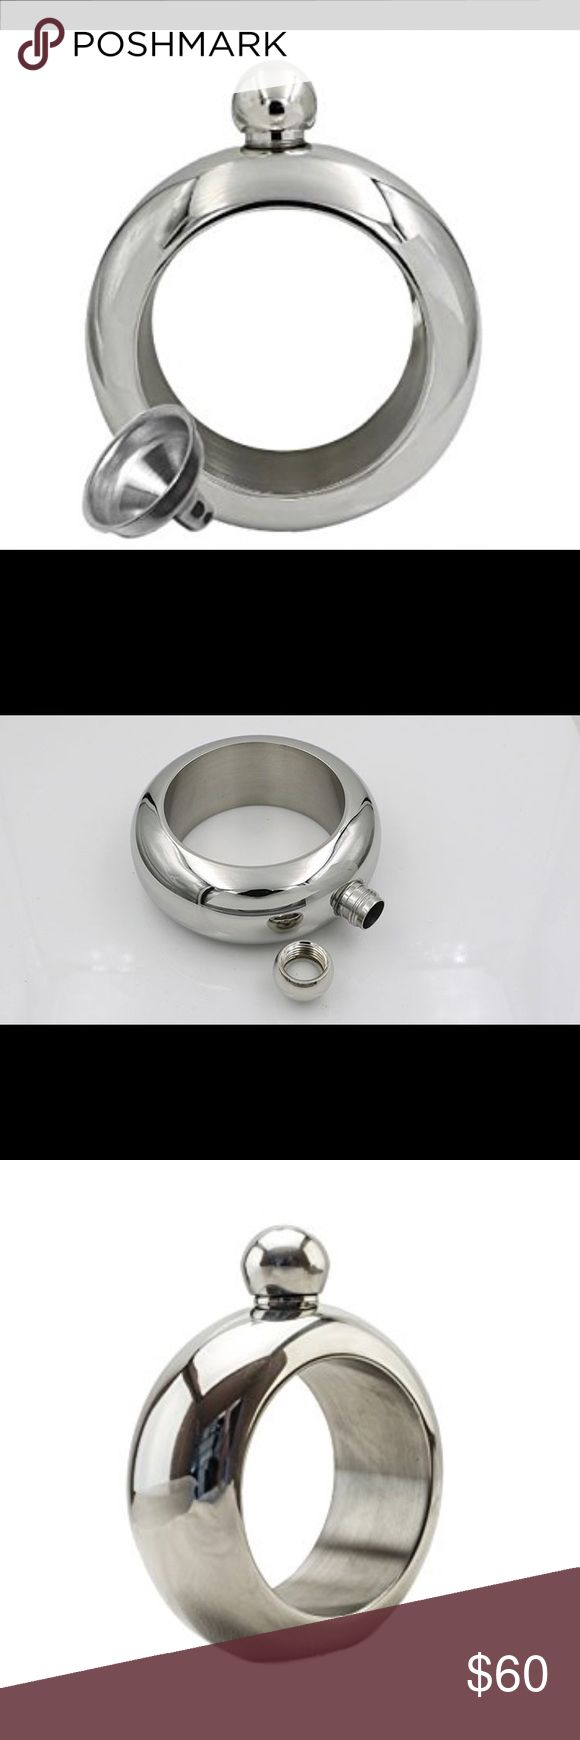 🔥Hot🔥Silver Flask Bracelet with funnel Silver flask bangle bracelet with funnel included. Holds 3oz of liquid. Price Firm. Jewelry Bracelets